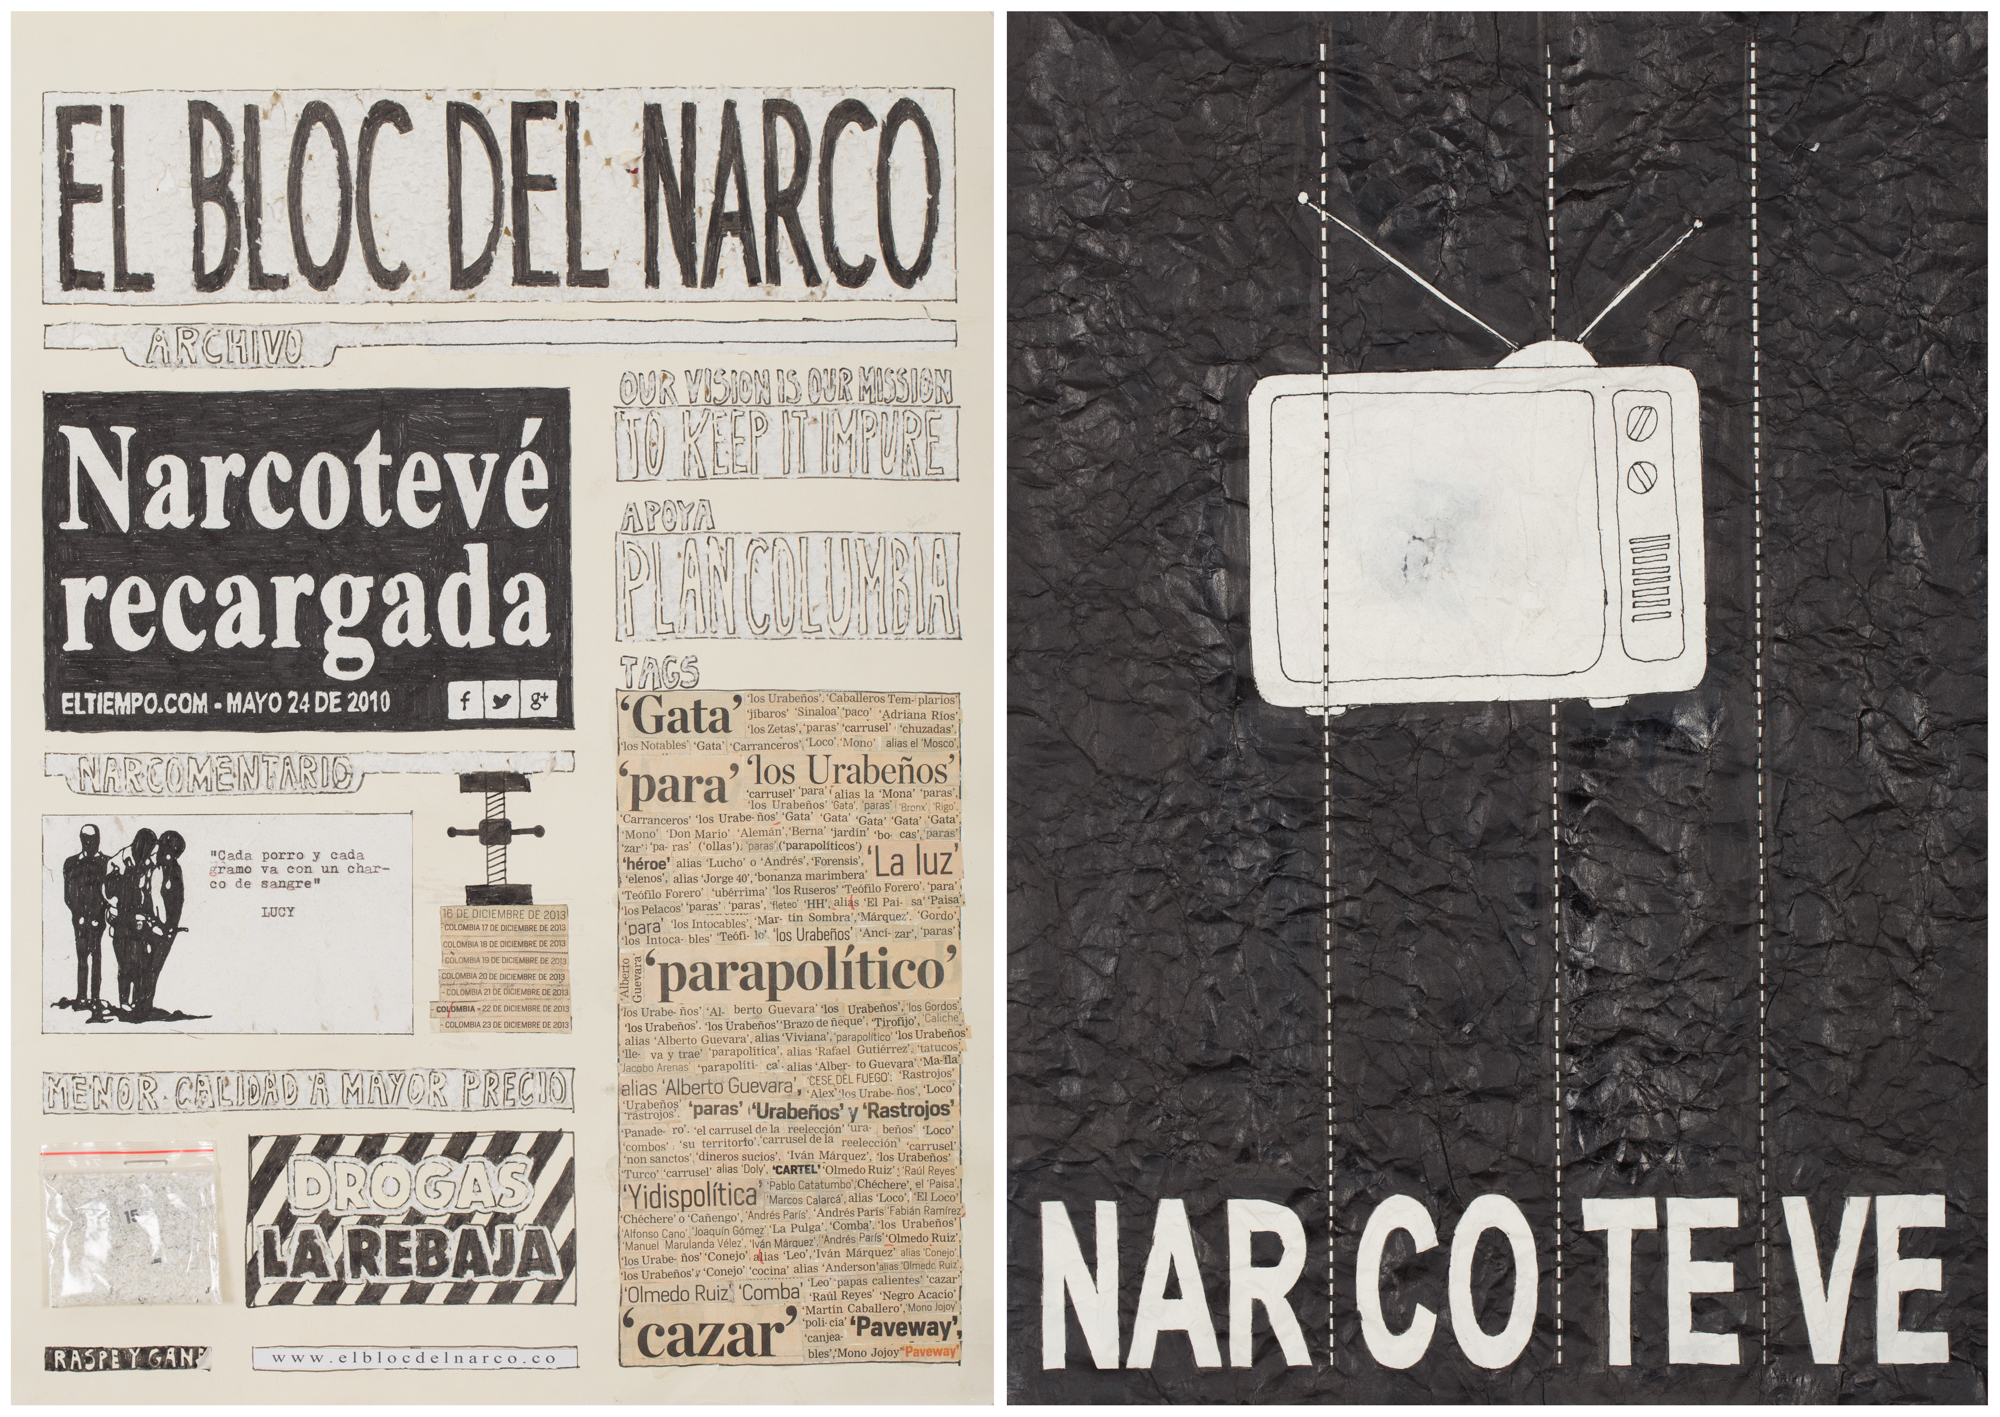 Camilo Restrepo. <em>El Bloc Del Narco #15</em>, 2016. Ink, water-soluble wax pastel, tape, glue, newspaper clippings, staples, plastic bag, paper dust and saliva on paper, 16 1/2 x 24 inches (41.9 x 61 cm)